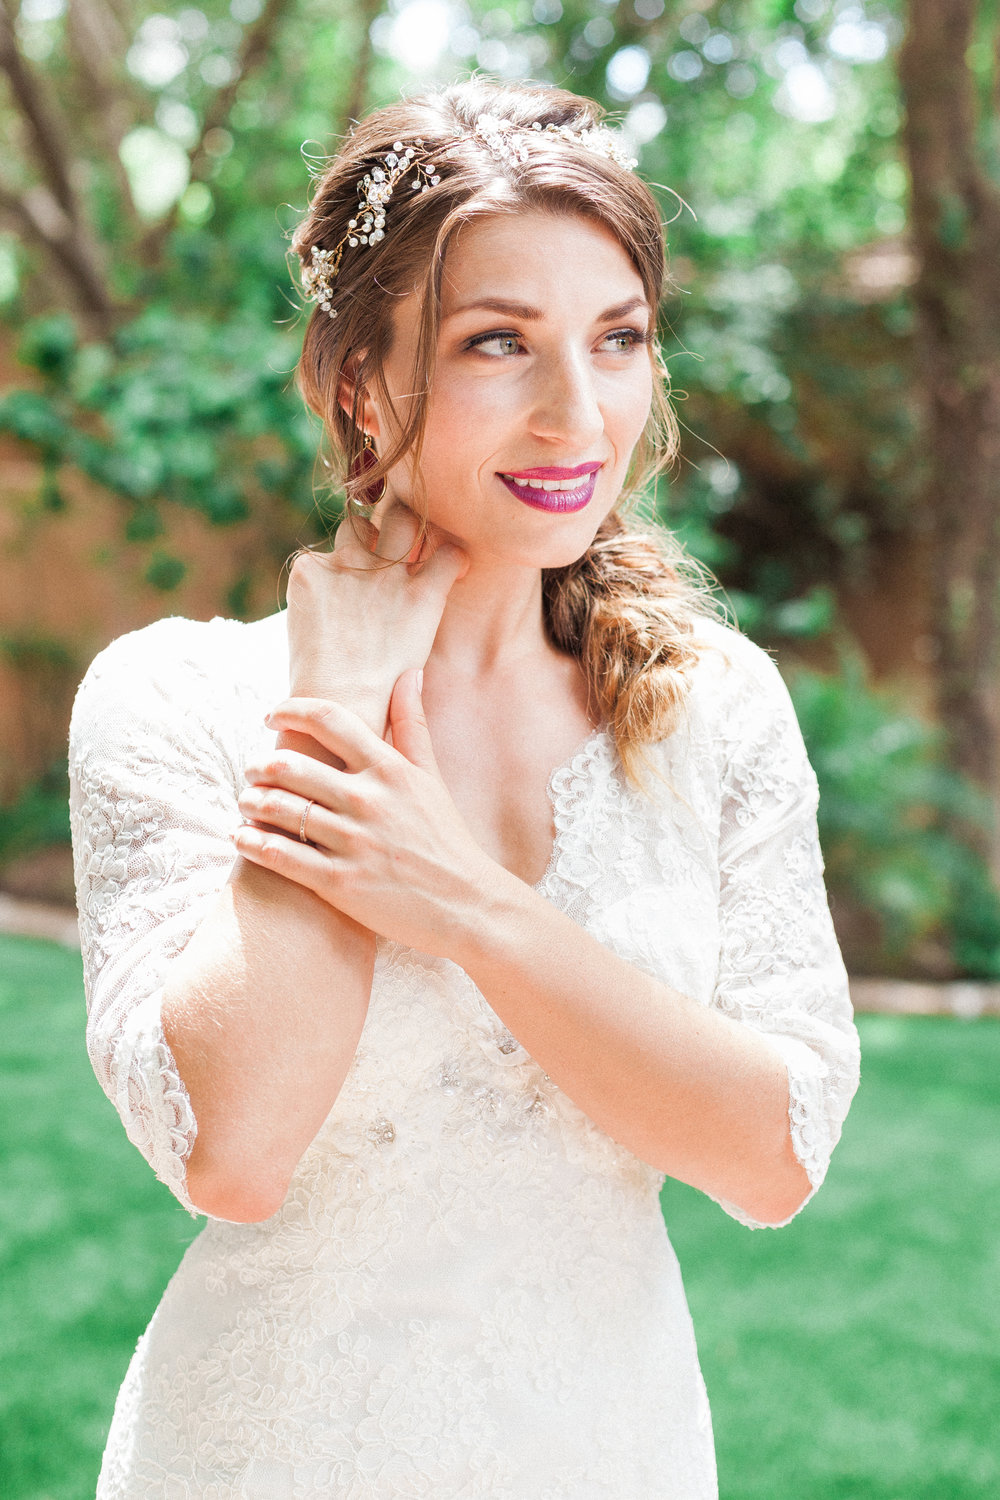 HAIR + MAKEUP: Harley Ann Artistry | PHOTO: April Robert | FLOWERS: Heritage Flowers AZ